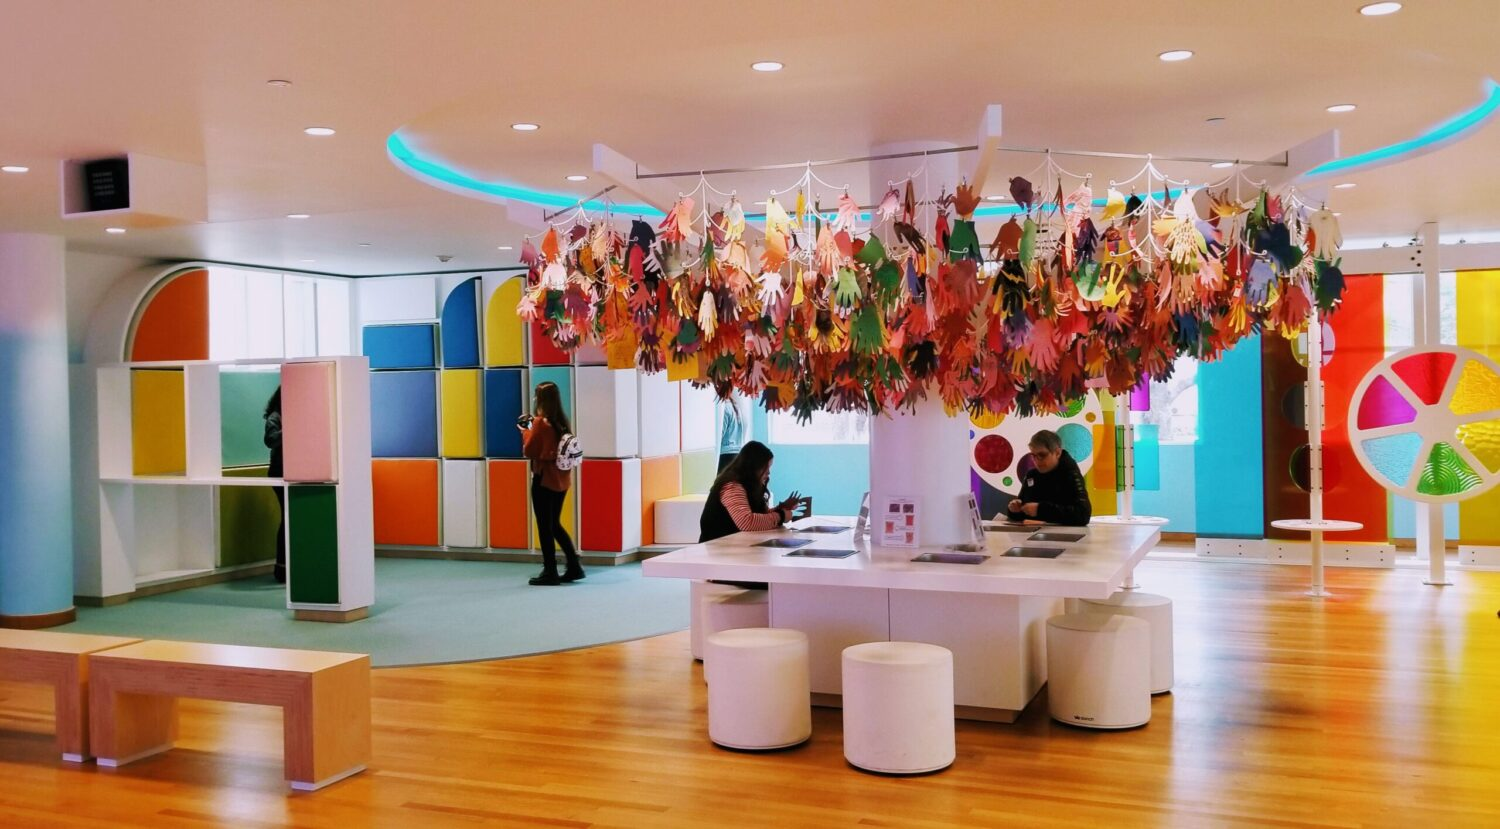 High Museum of Art in Atlanta offers lots of activities for kids of all ages.